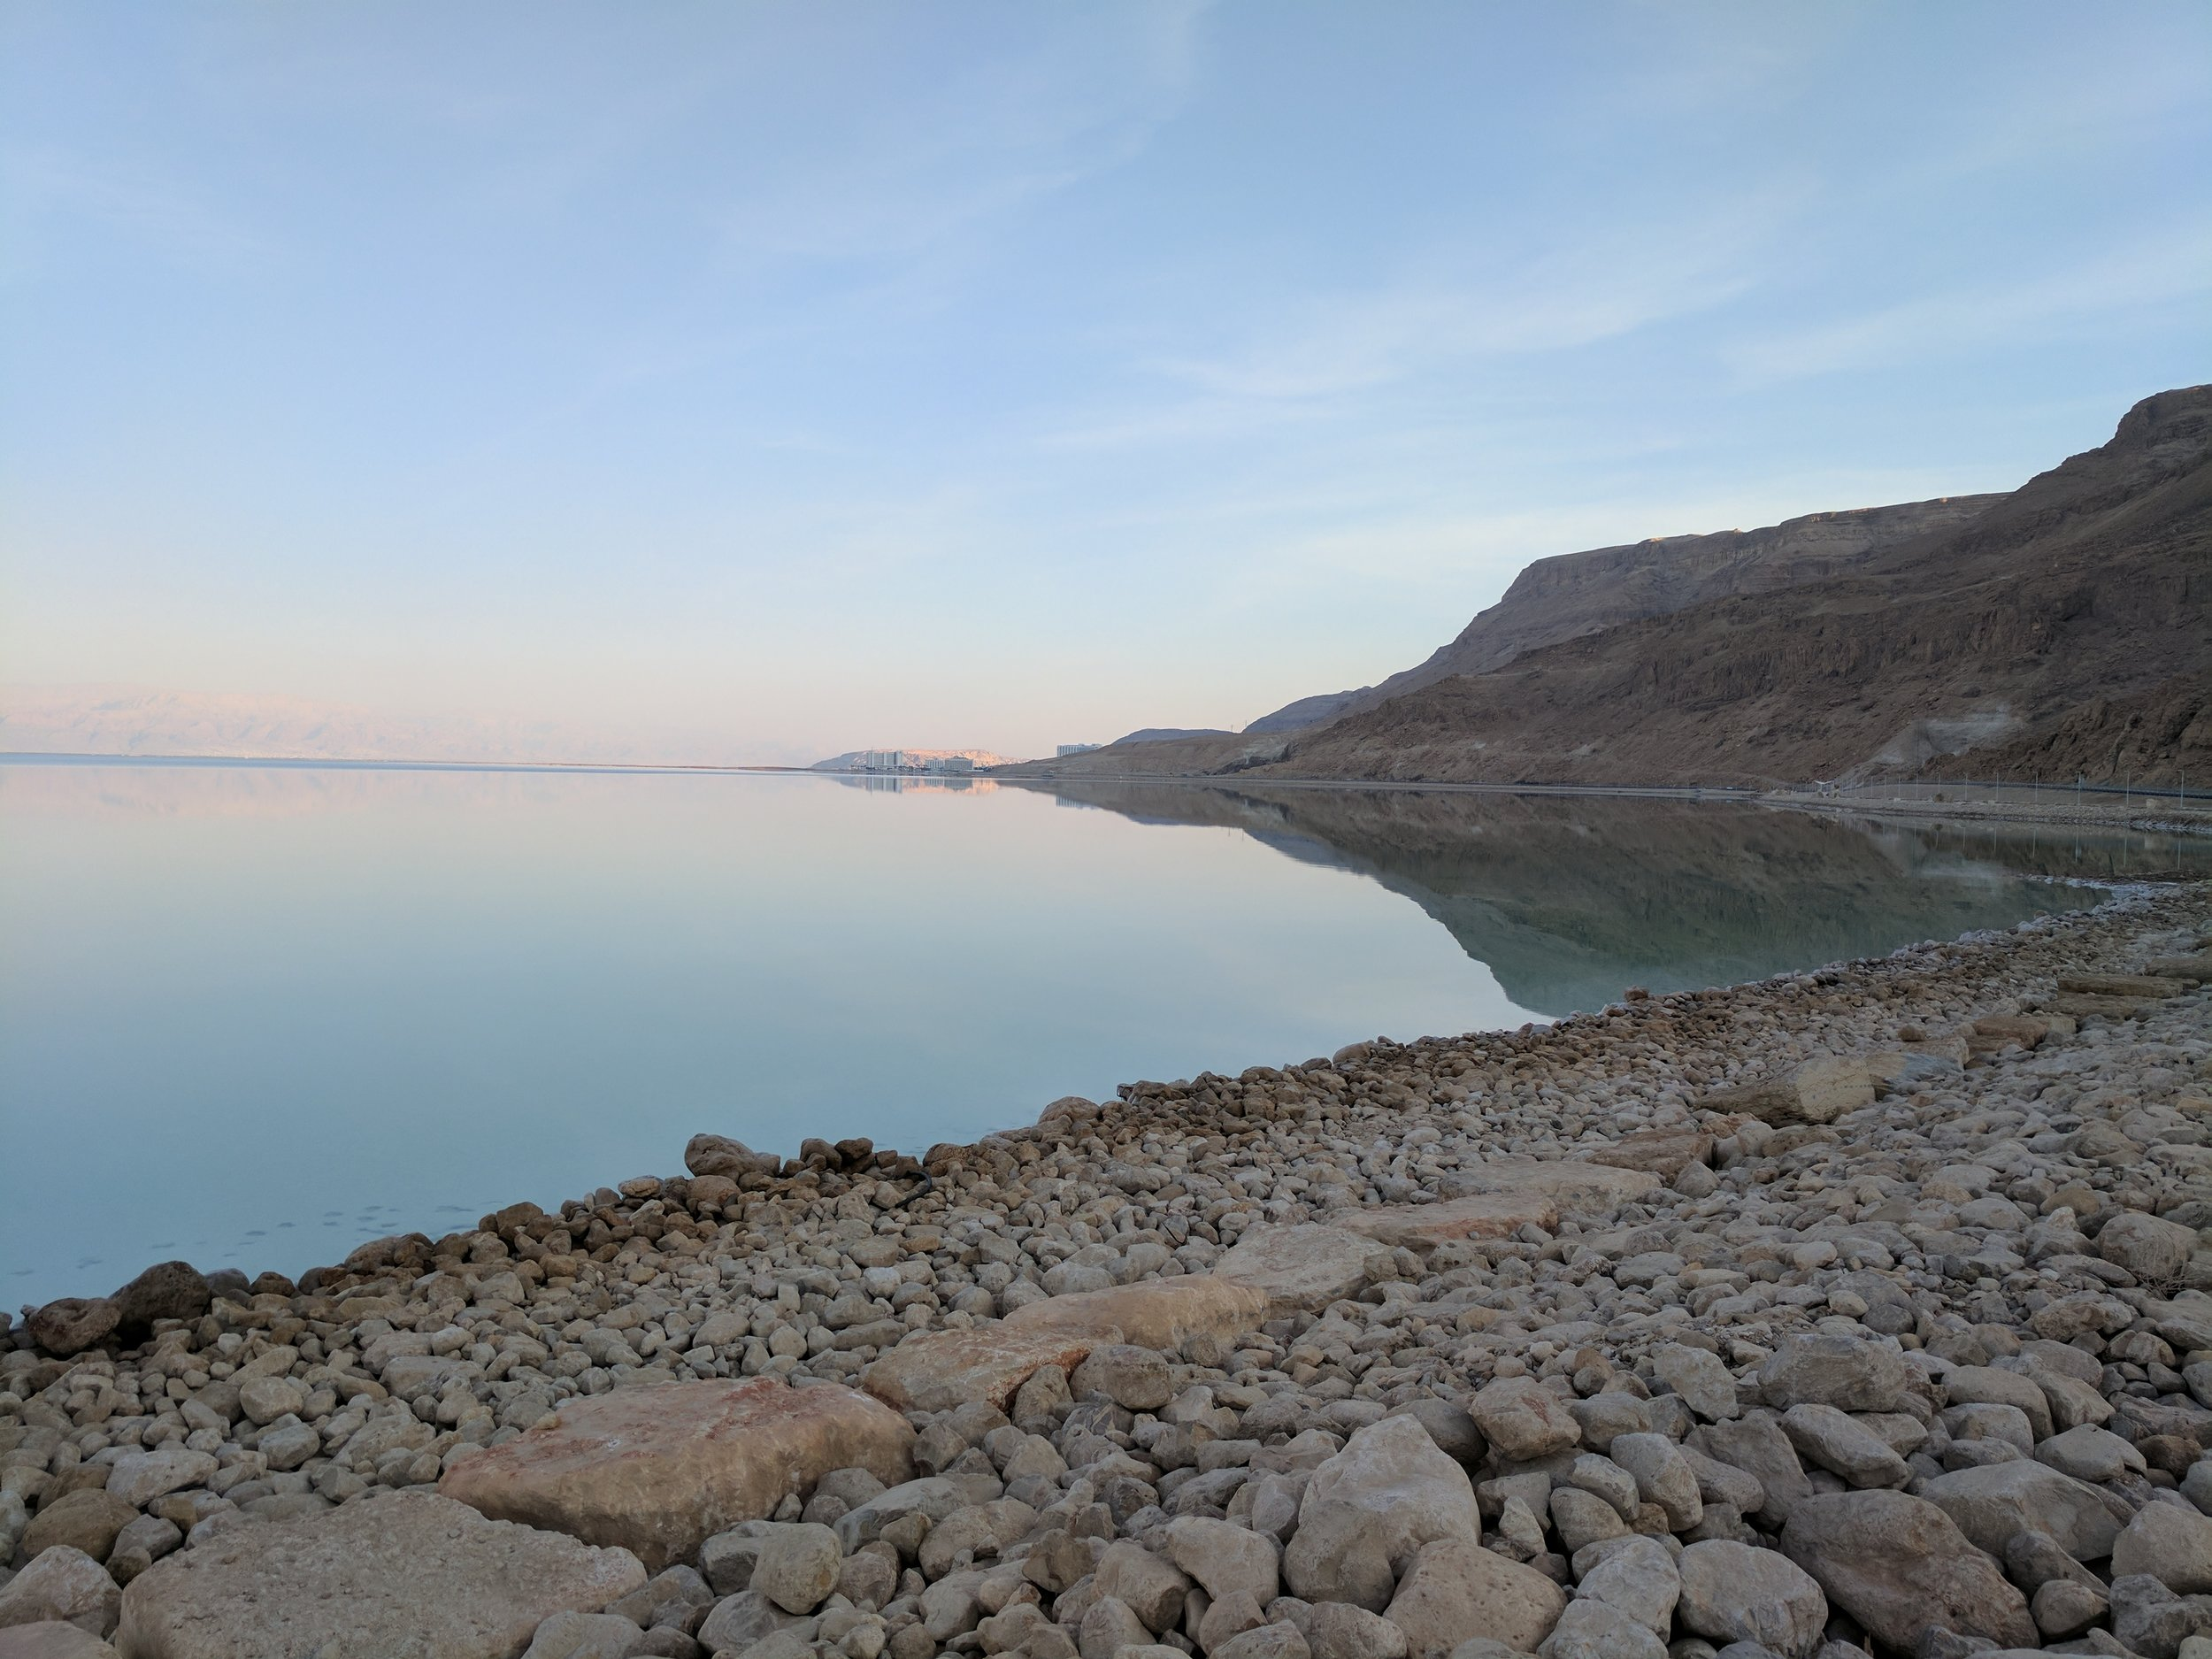 The Dead Sea, with Jordan (the hazy cliffs on the left) in the background